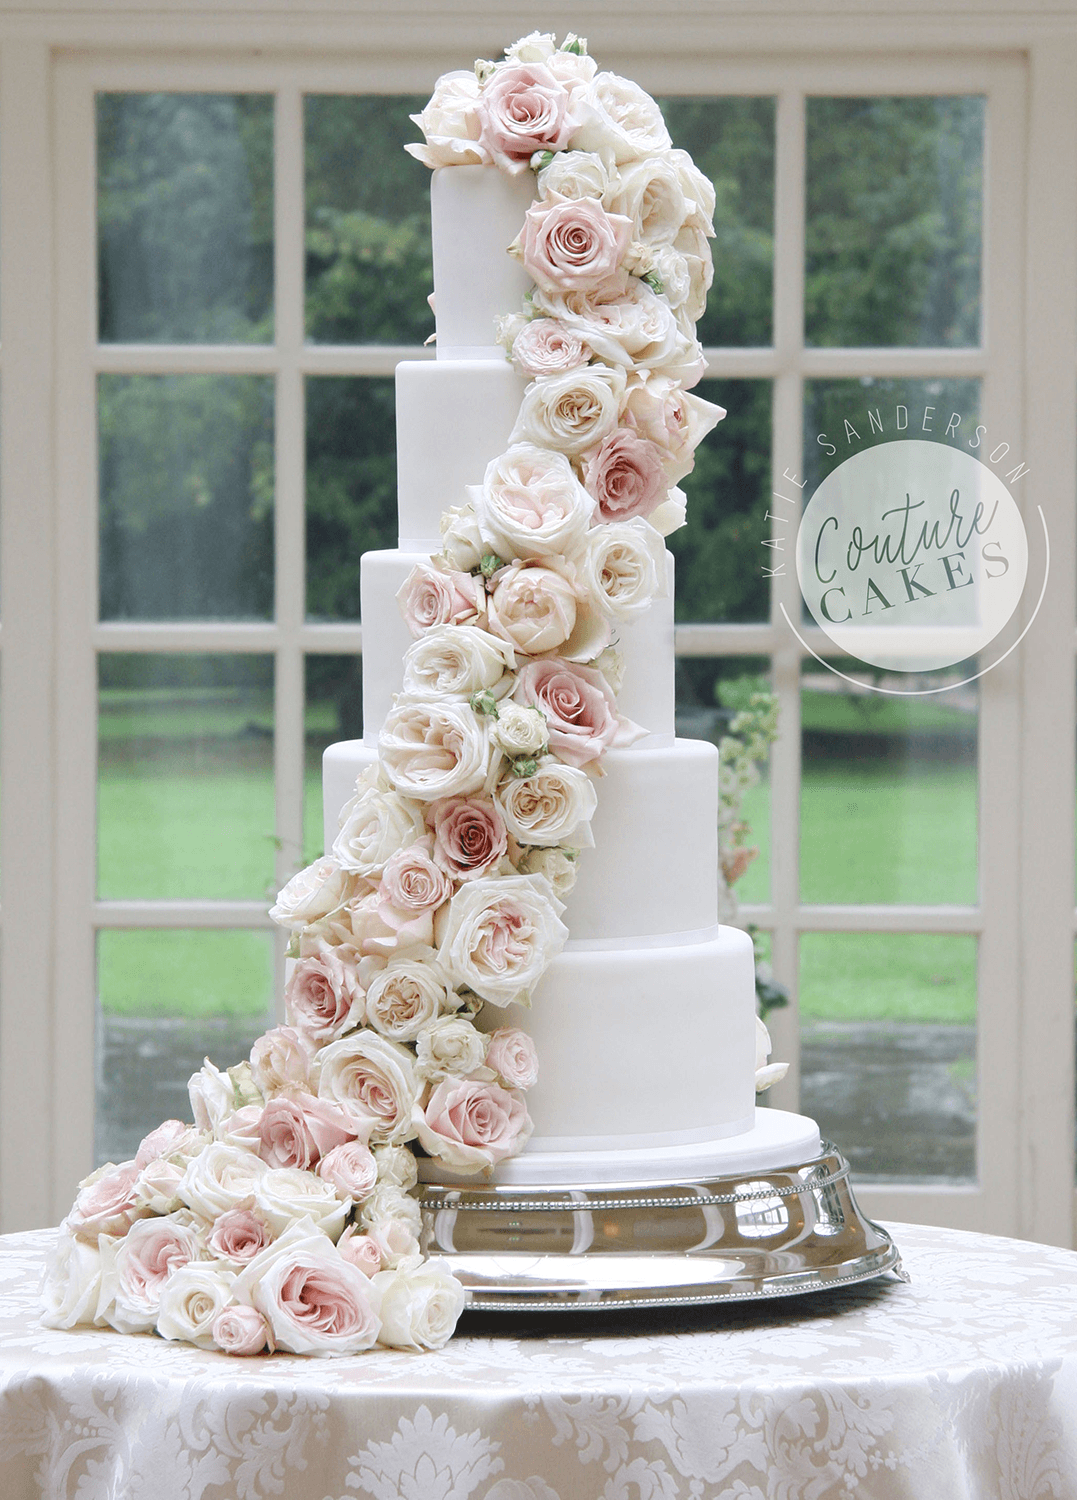 Tiered wedding cakes couture cakes serves 220 portions price category a 645 plus flowers from 120 junglespirit